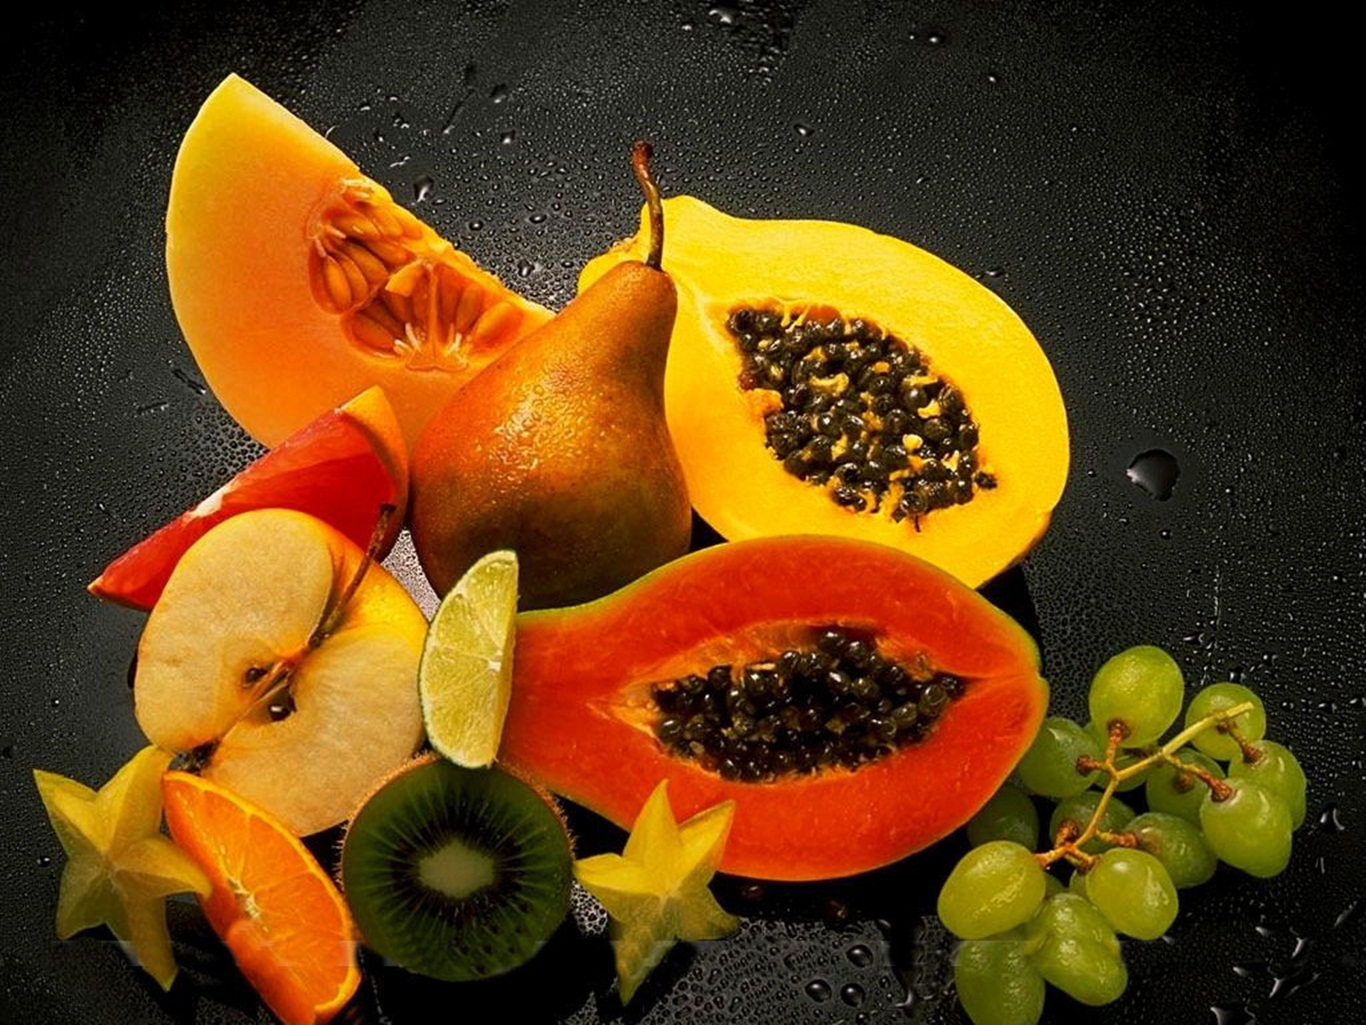 fruits-wallpapers-20-photos- (13)